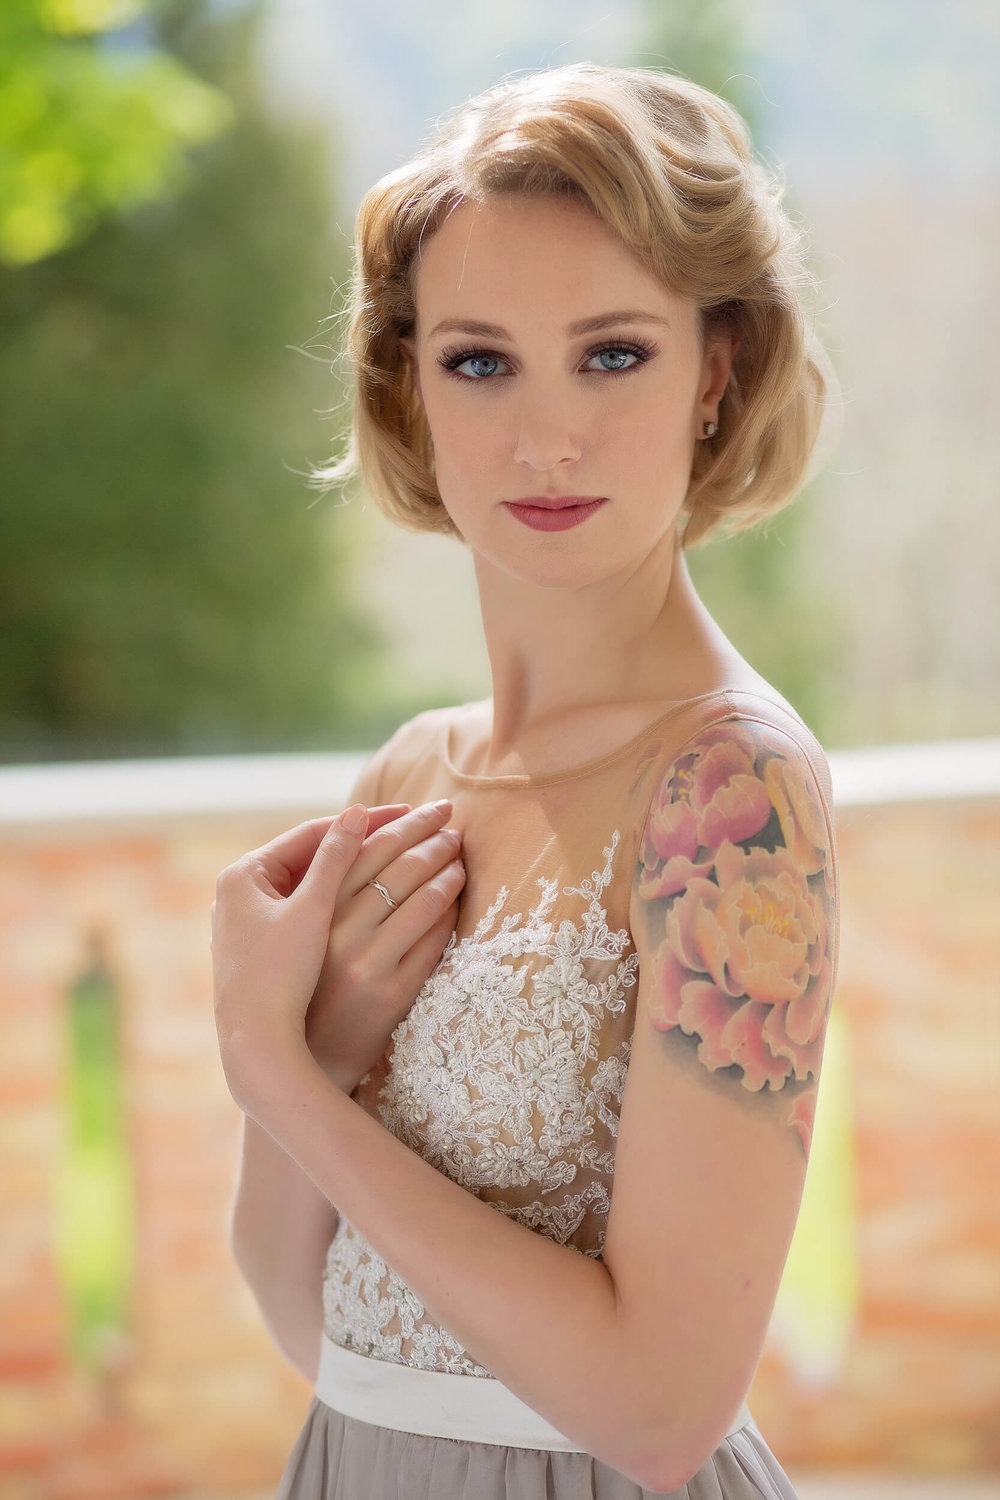 Beautiful backlit portrait of women with tatto in elegant gown